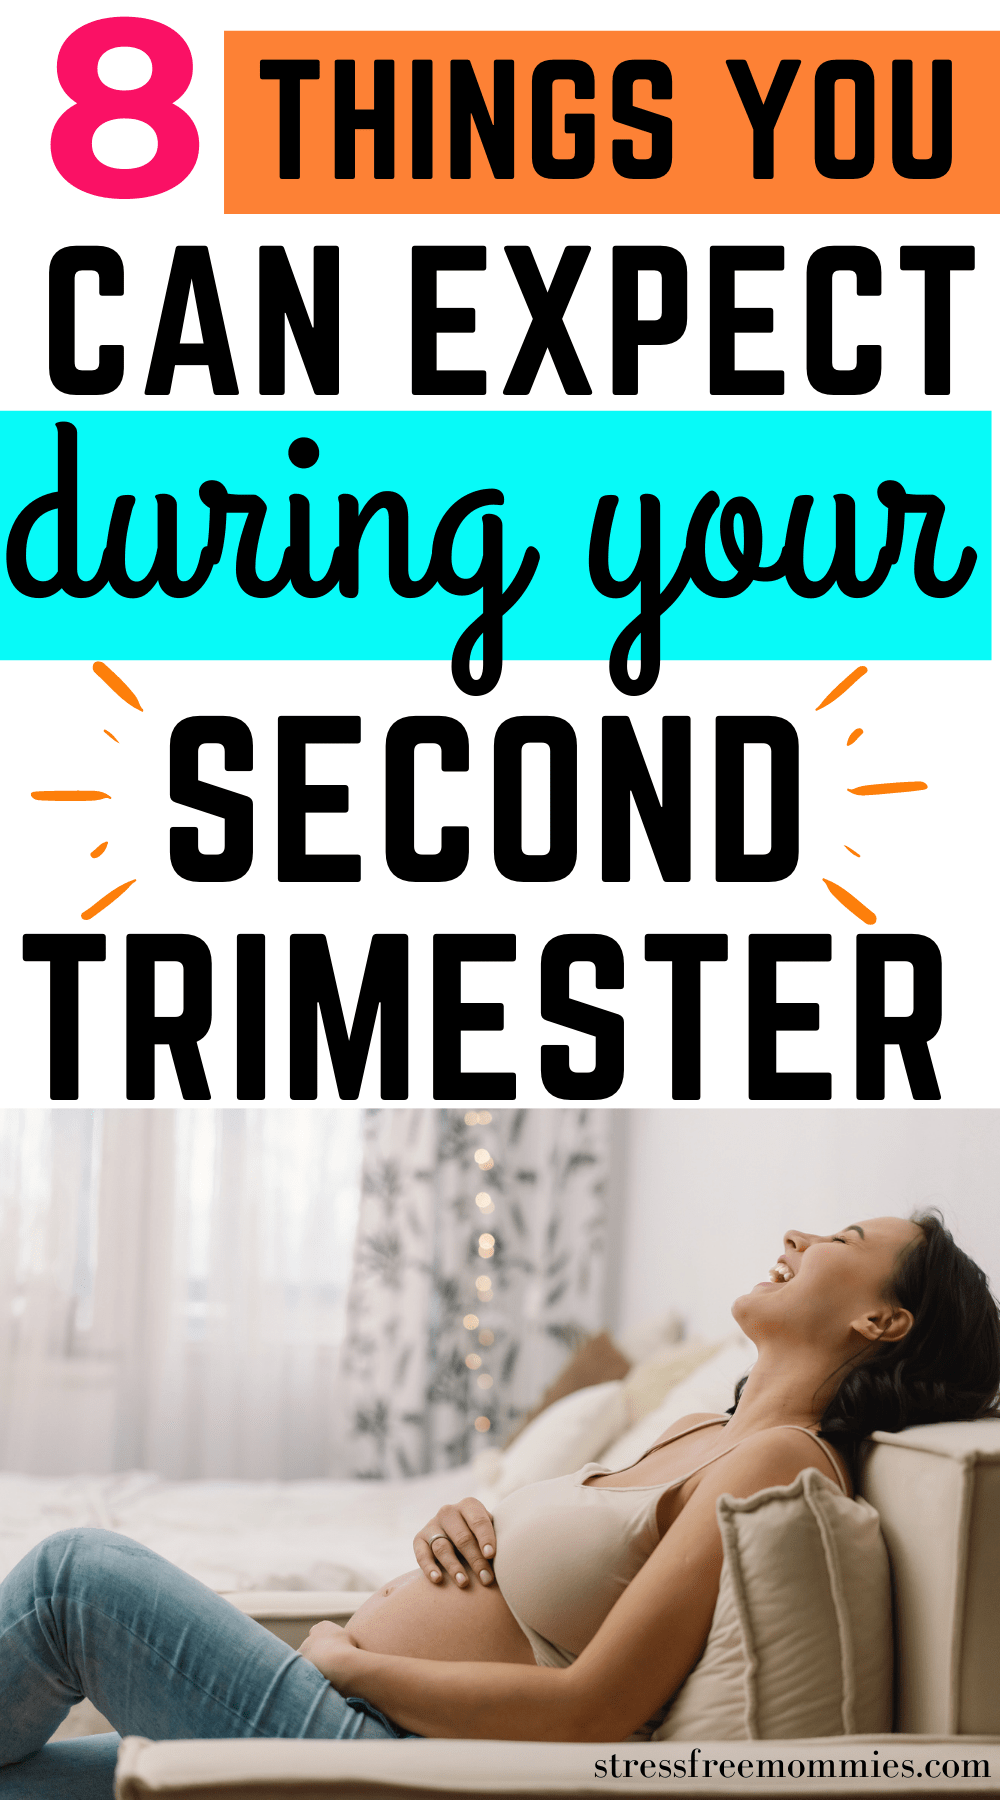 8 things you can expect during your second trimester